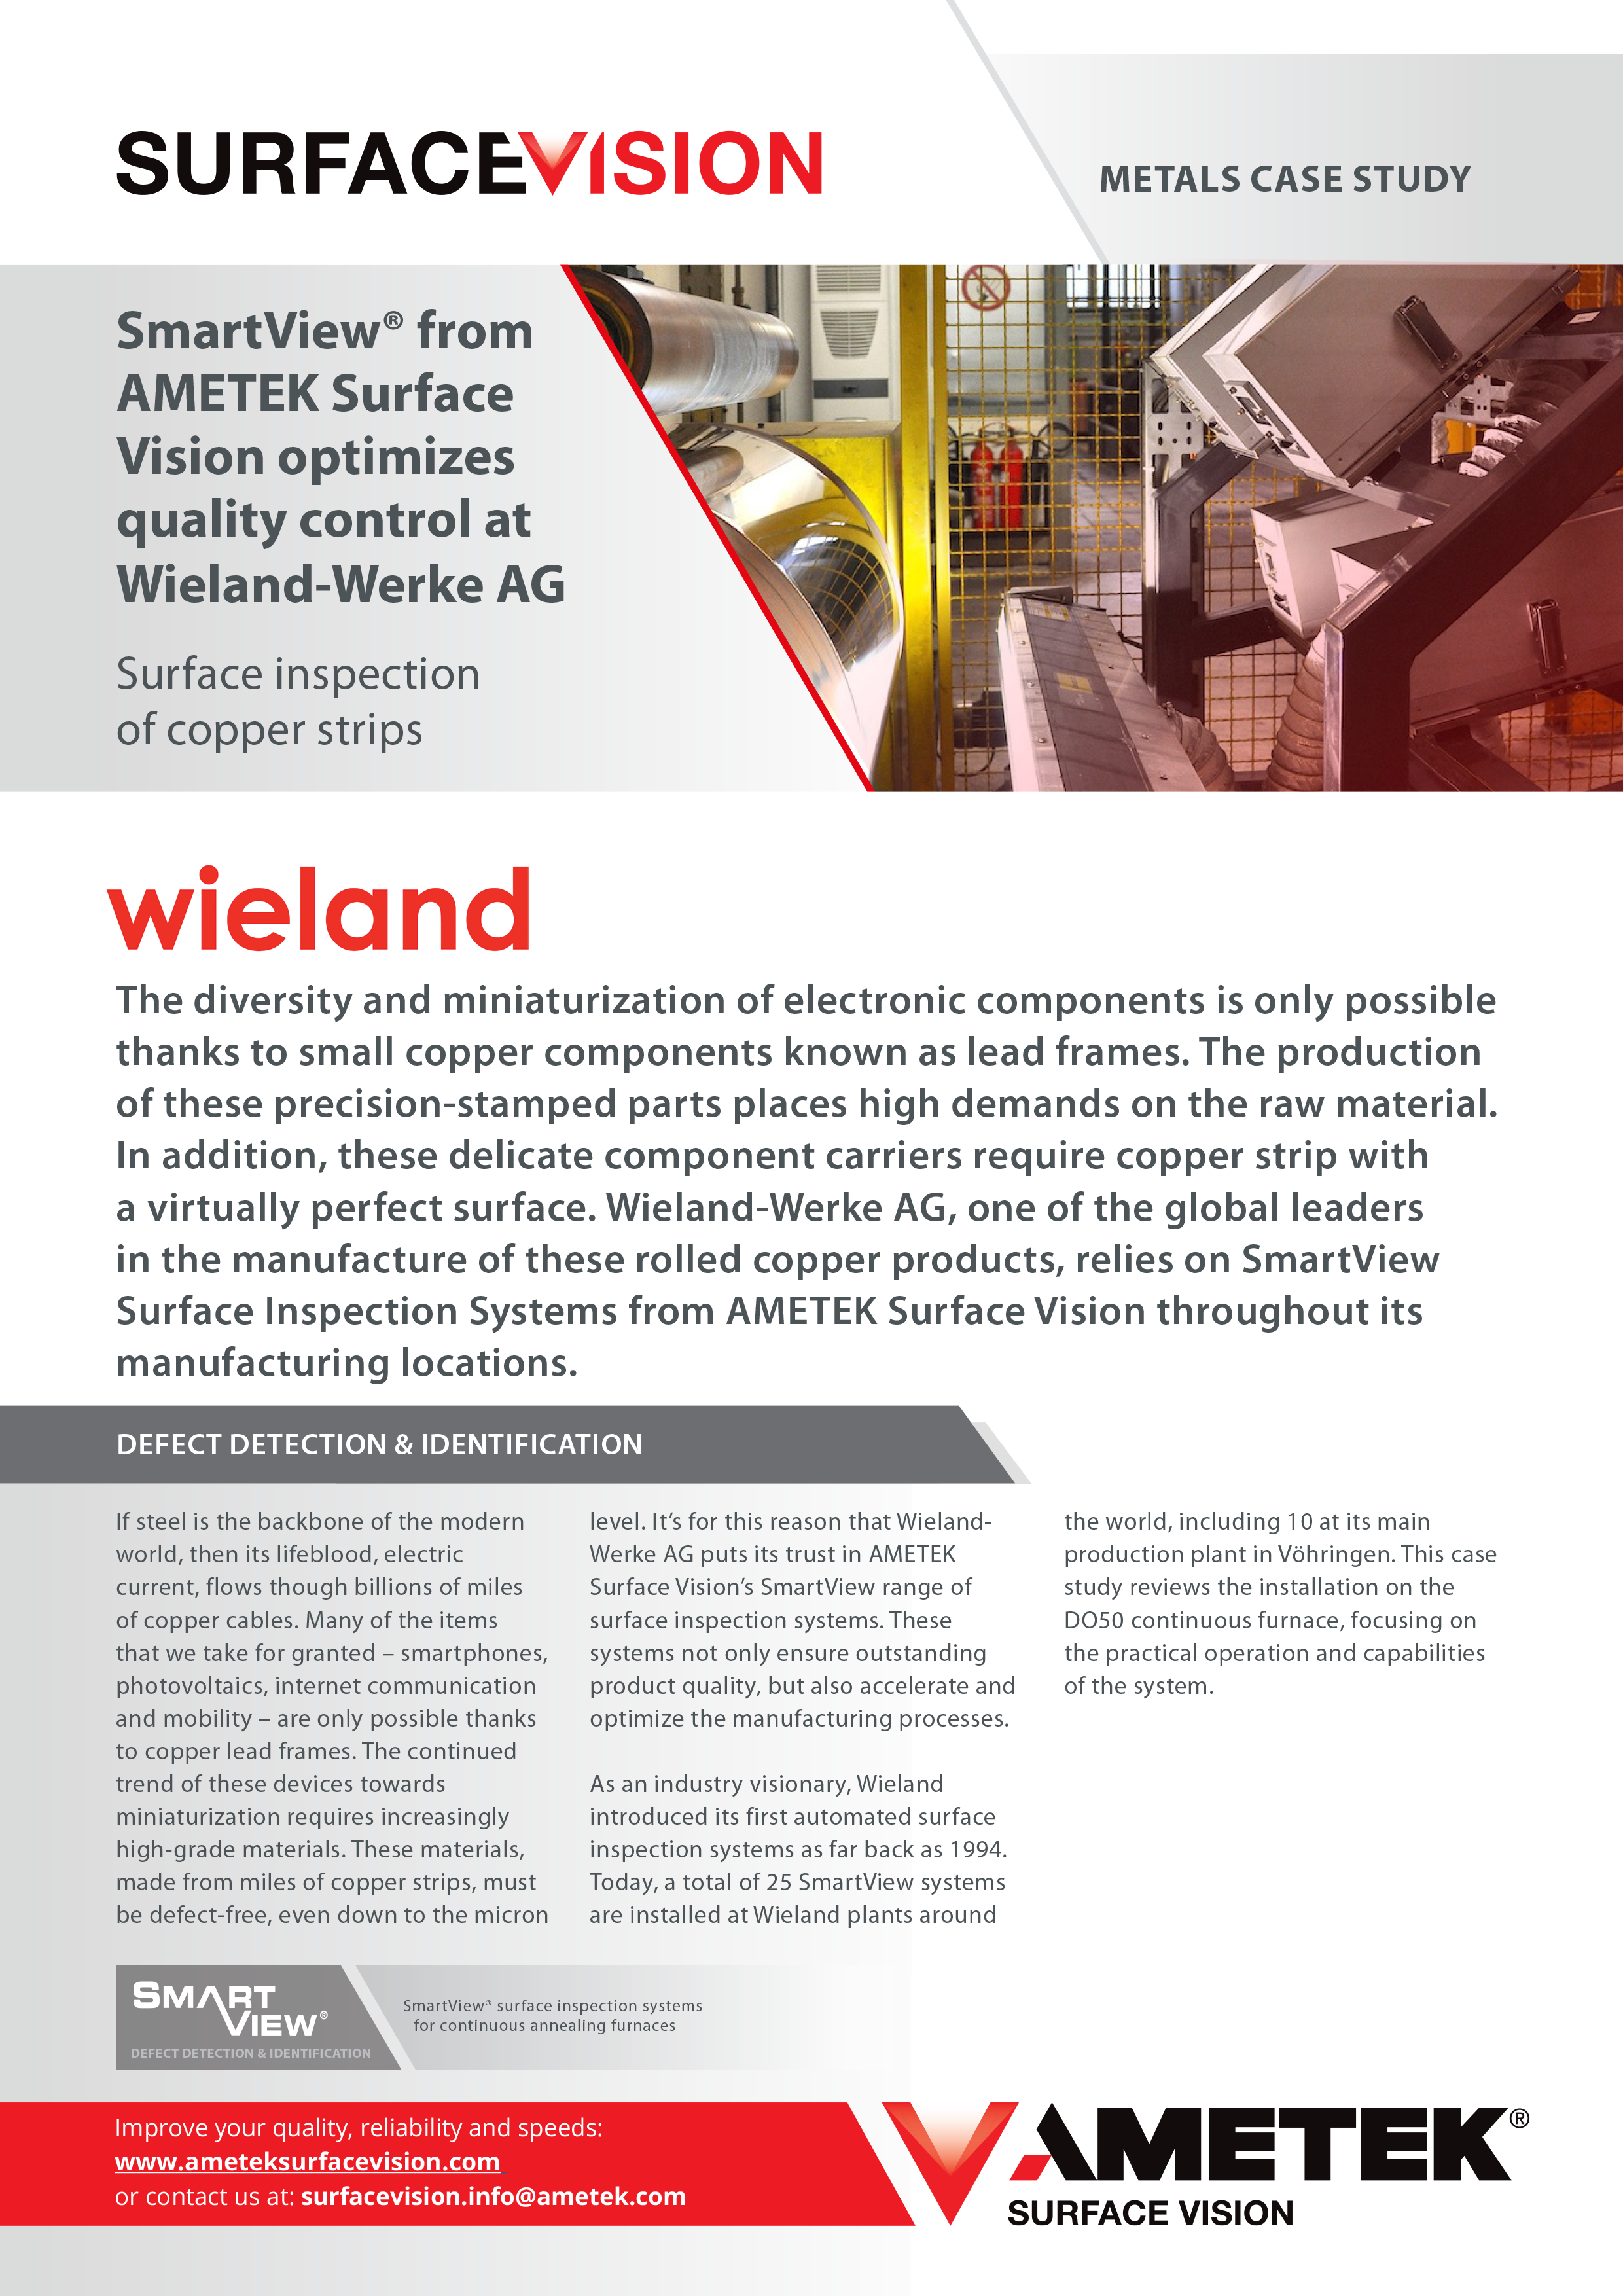 SmartView® optimizes quality control at Wieland-Werke AG with surface inspection of copper